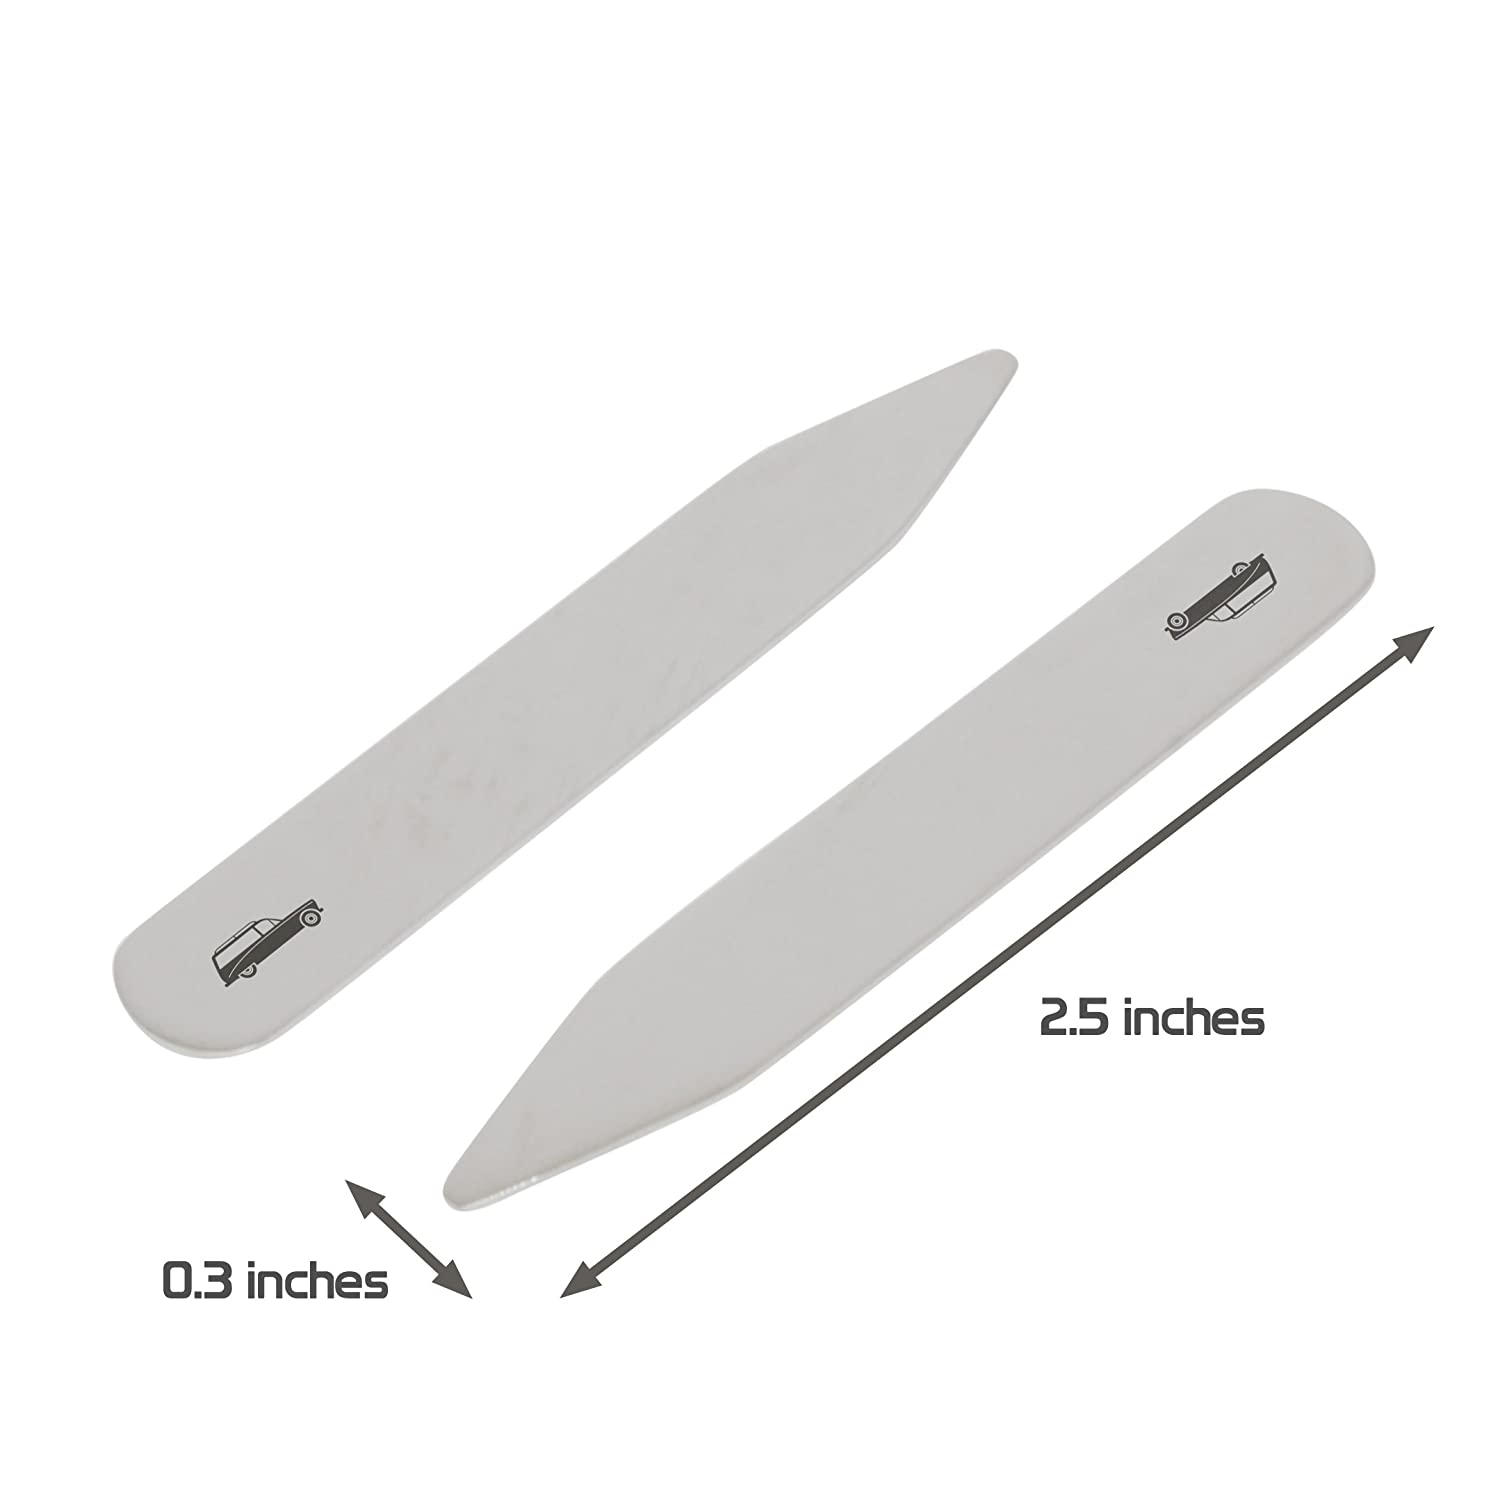 MODERN GOODS SHOP Stainless Steel Collar Stays With Laser Engraved Hearse Design Made In USA 2.5 Inch Metal Collar Stiffeners